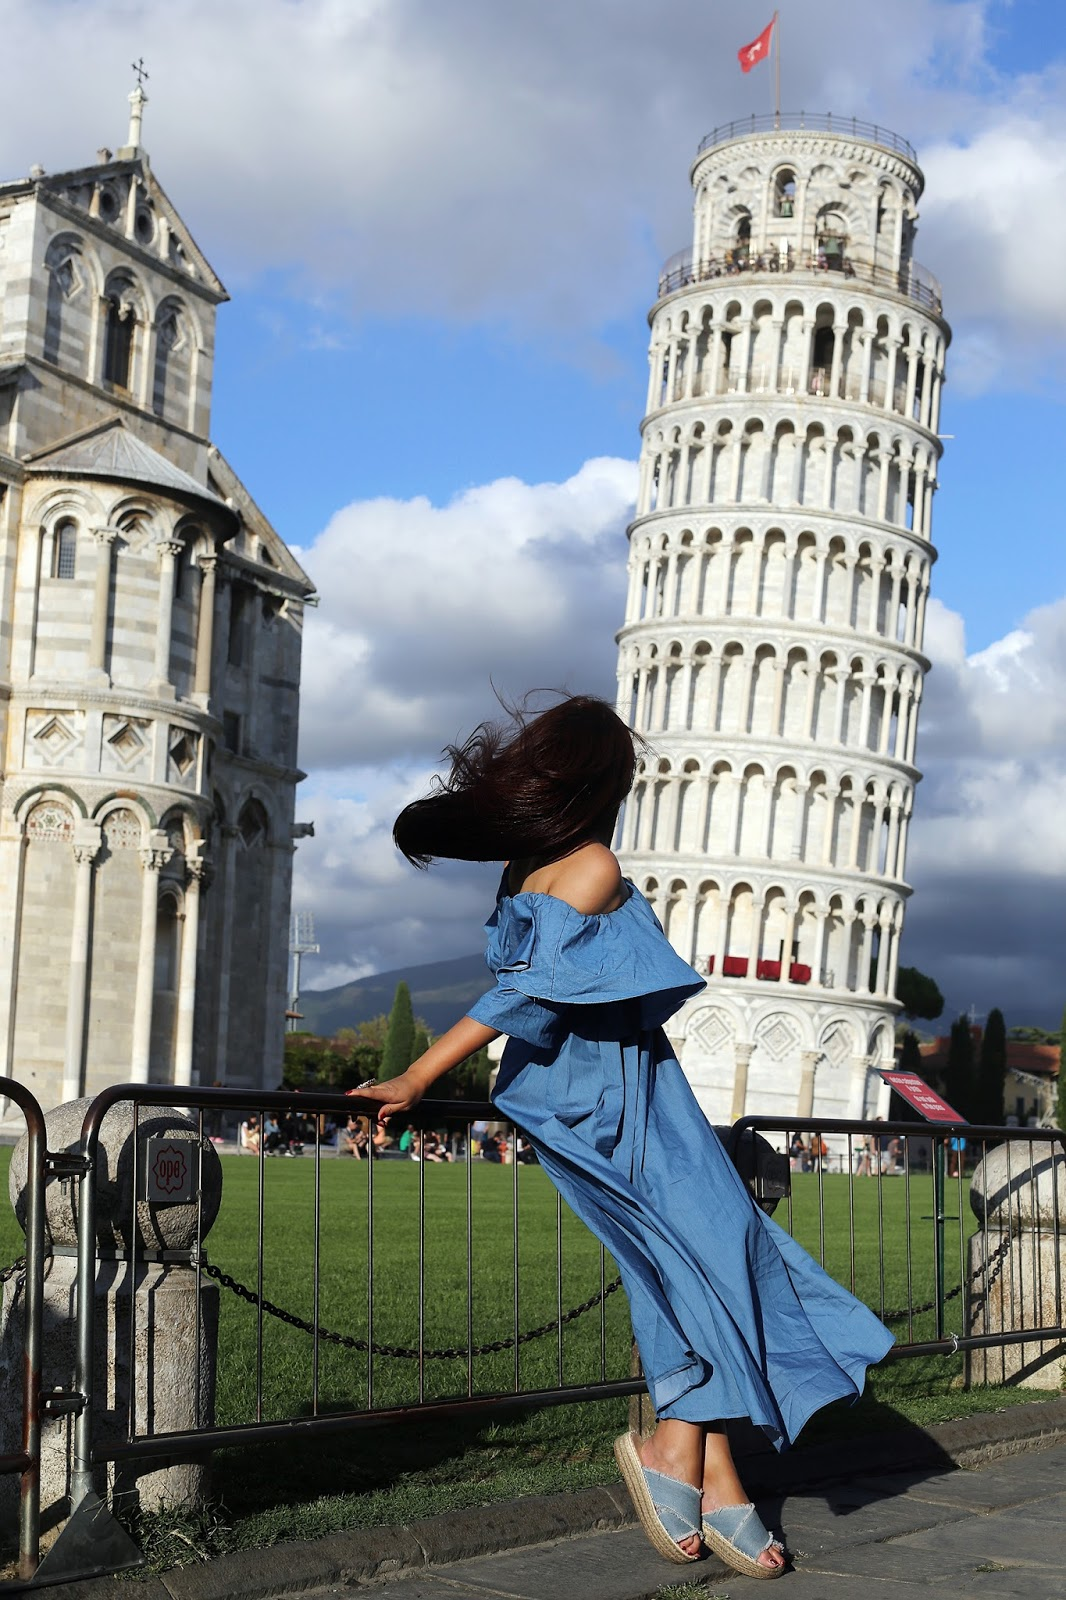 20 Days, 20 Cities, 6 Countries - Part 11: Tuscan Tales in Florence & Pisa, Italy